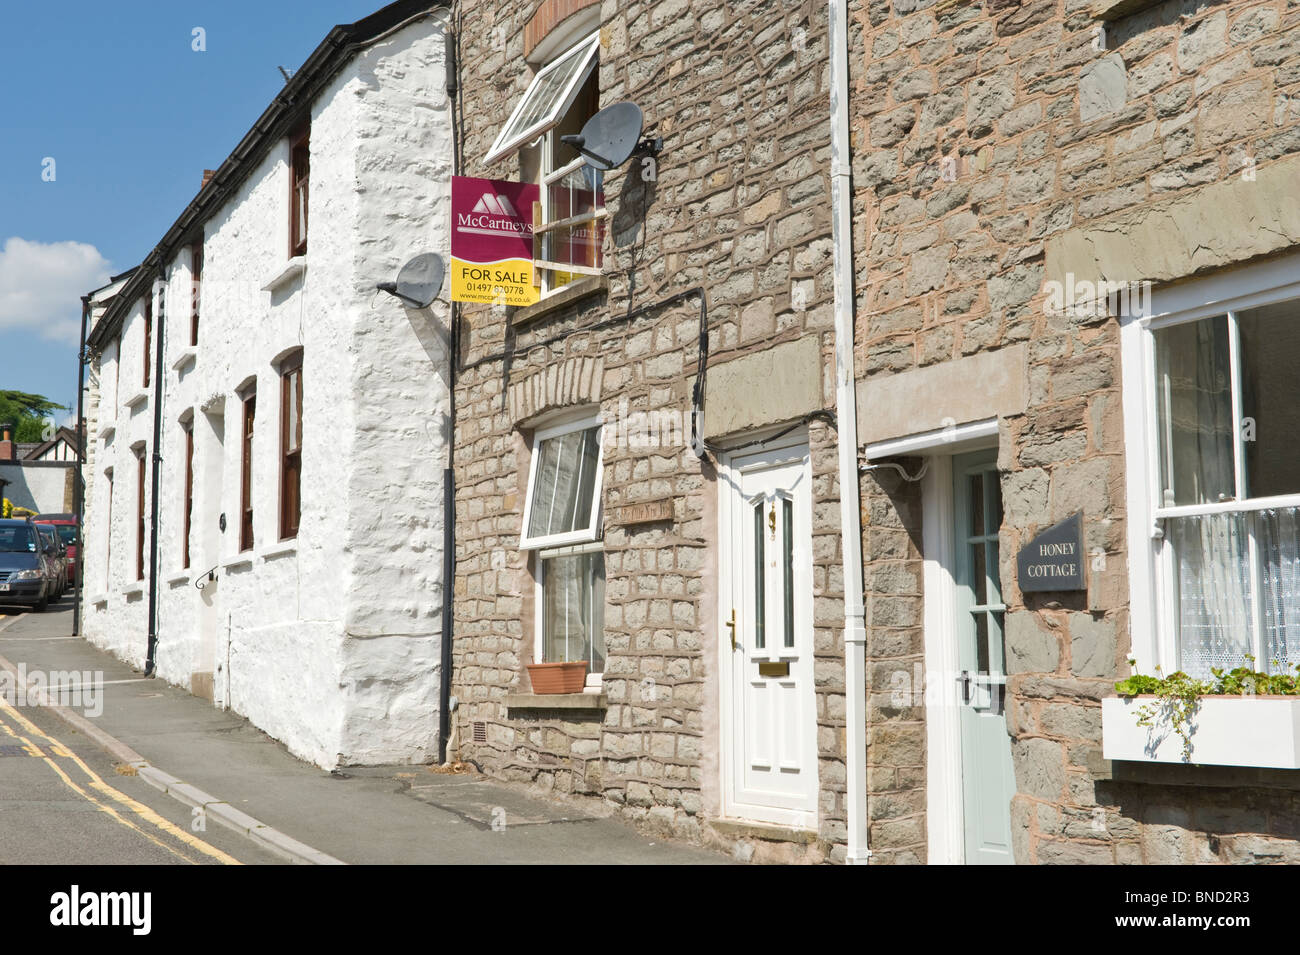 Stone built house for sale in terrace at Hay-on-Wye Powys Wales UK - Stock Image